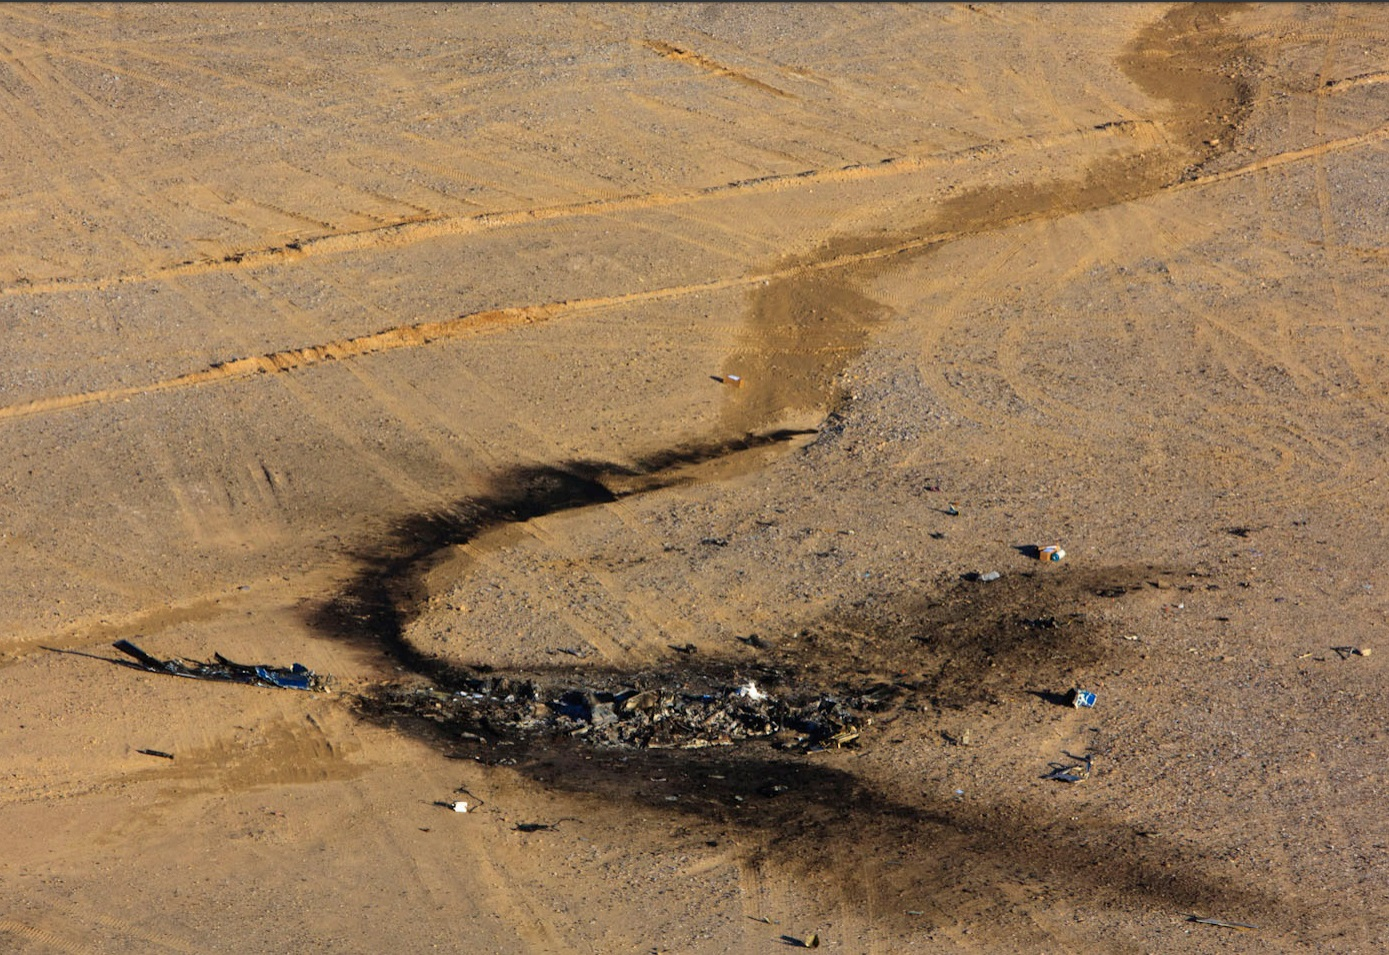 Wreckage of AAR Airlift Bell 214ST B5748M in Helmand (Credit: DOD via NTSB)